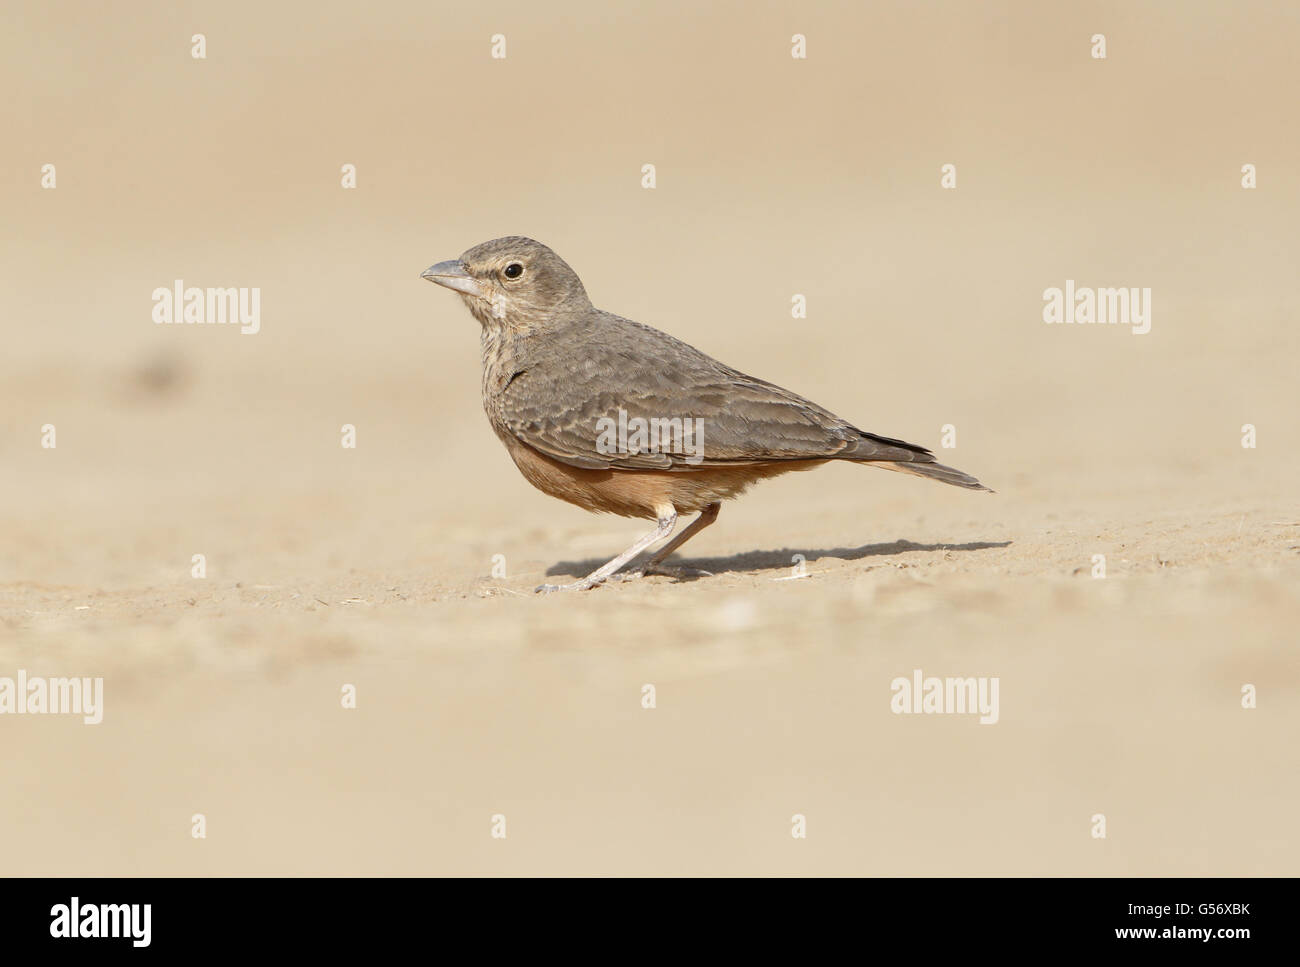 Rufous-tailed Lark (Ammomanes phoenicura) adult, standing on ground, Kutch, Gujarat, India, February - Stock Image